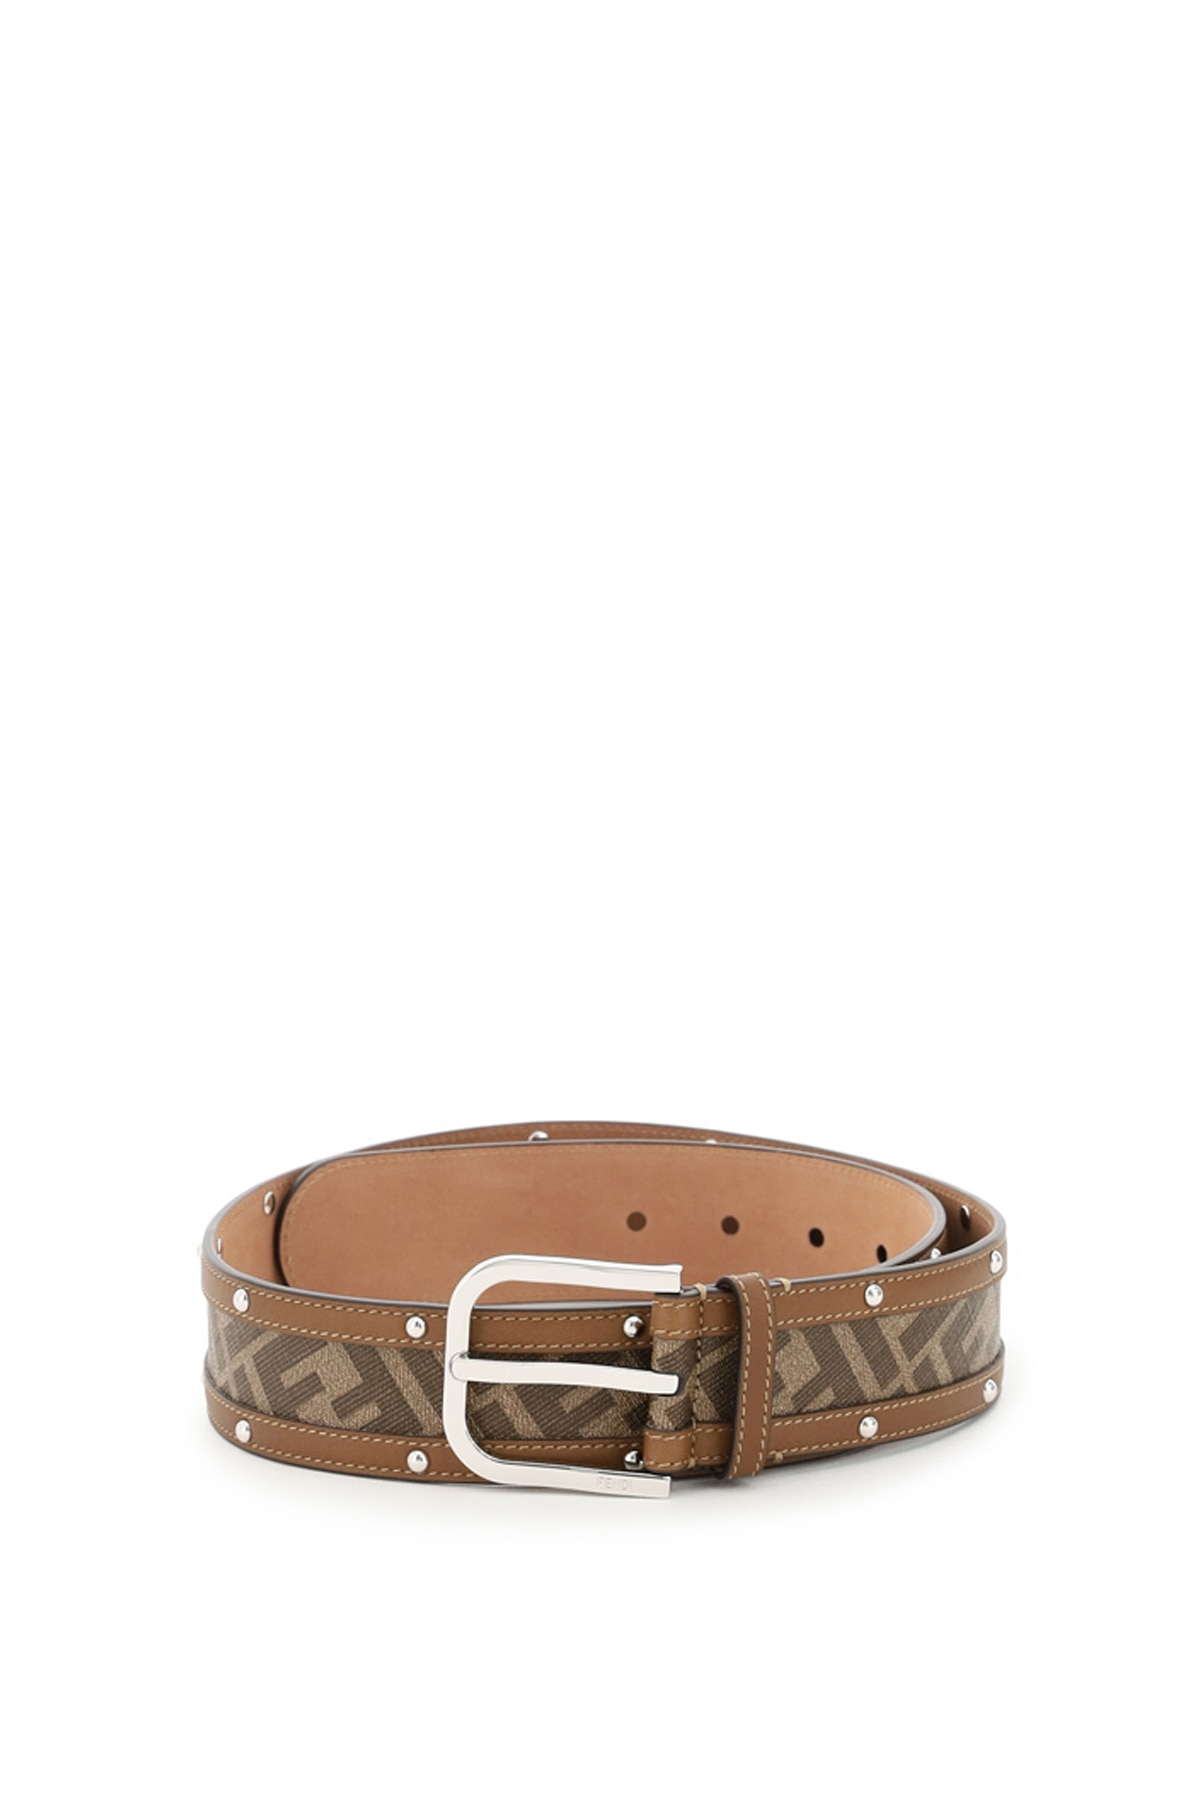 FENDI FF BELT WITH STUDS 100 Brown Leather, Cotton